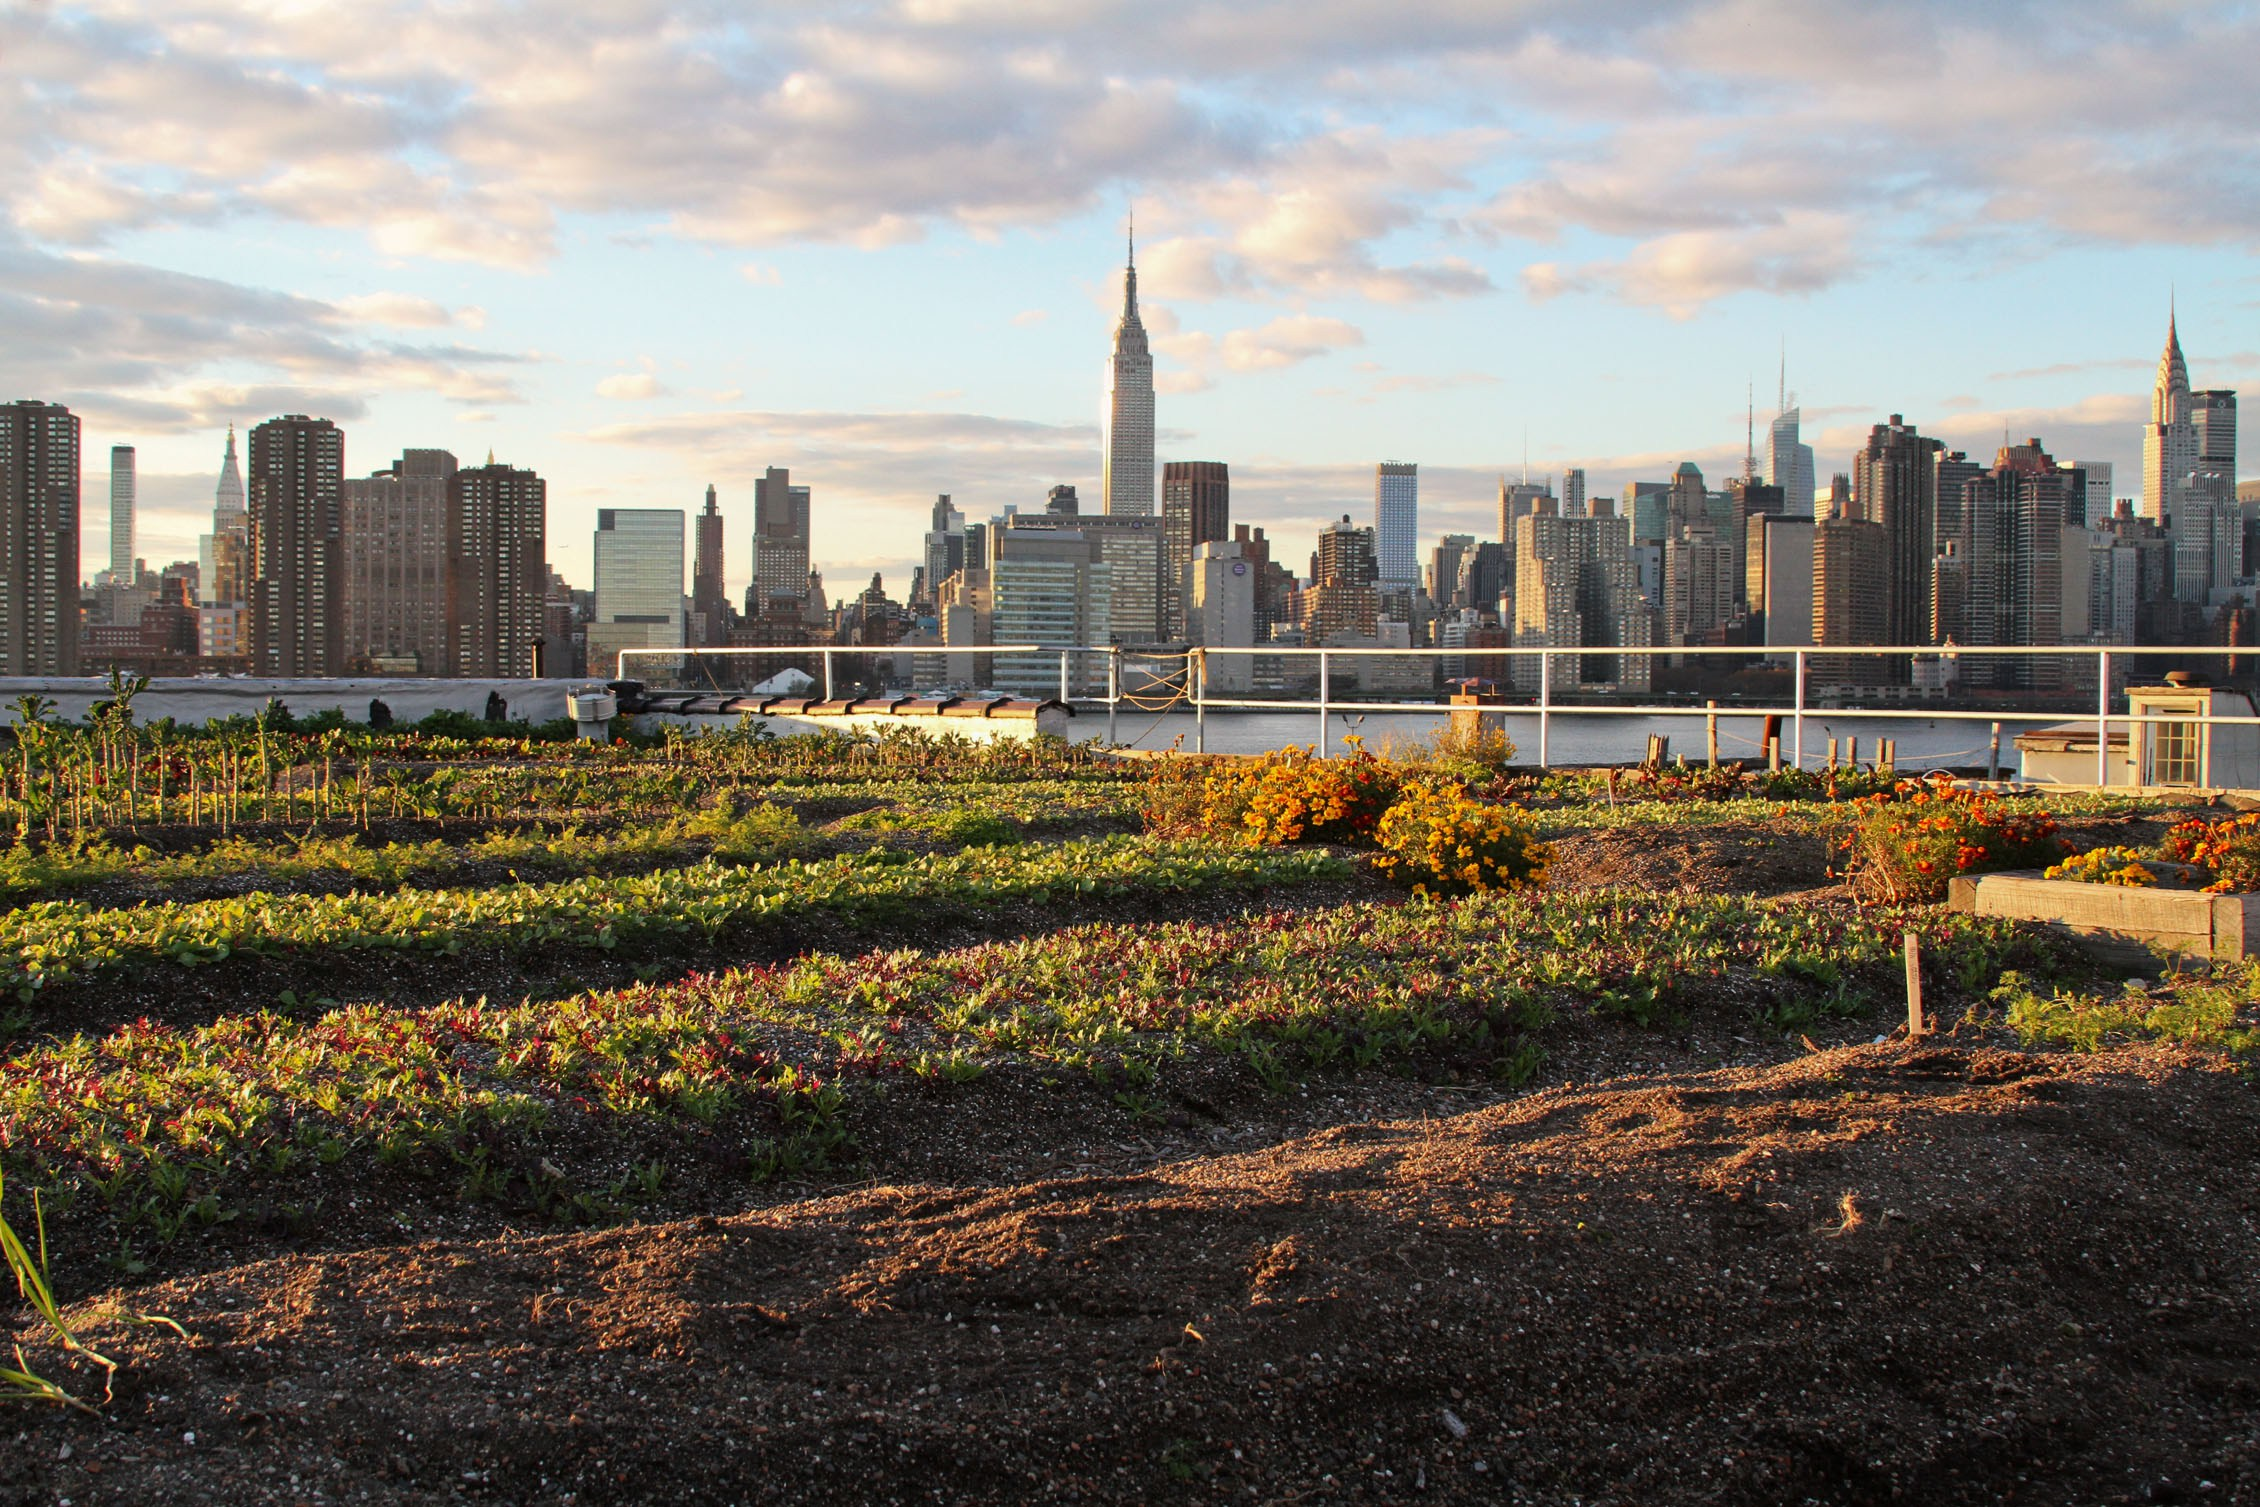 New_York_City_Urban_Agirculutre_Sustainability_Conservation_Environment_2.jpg